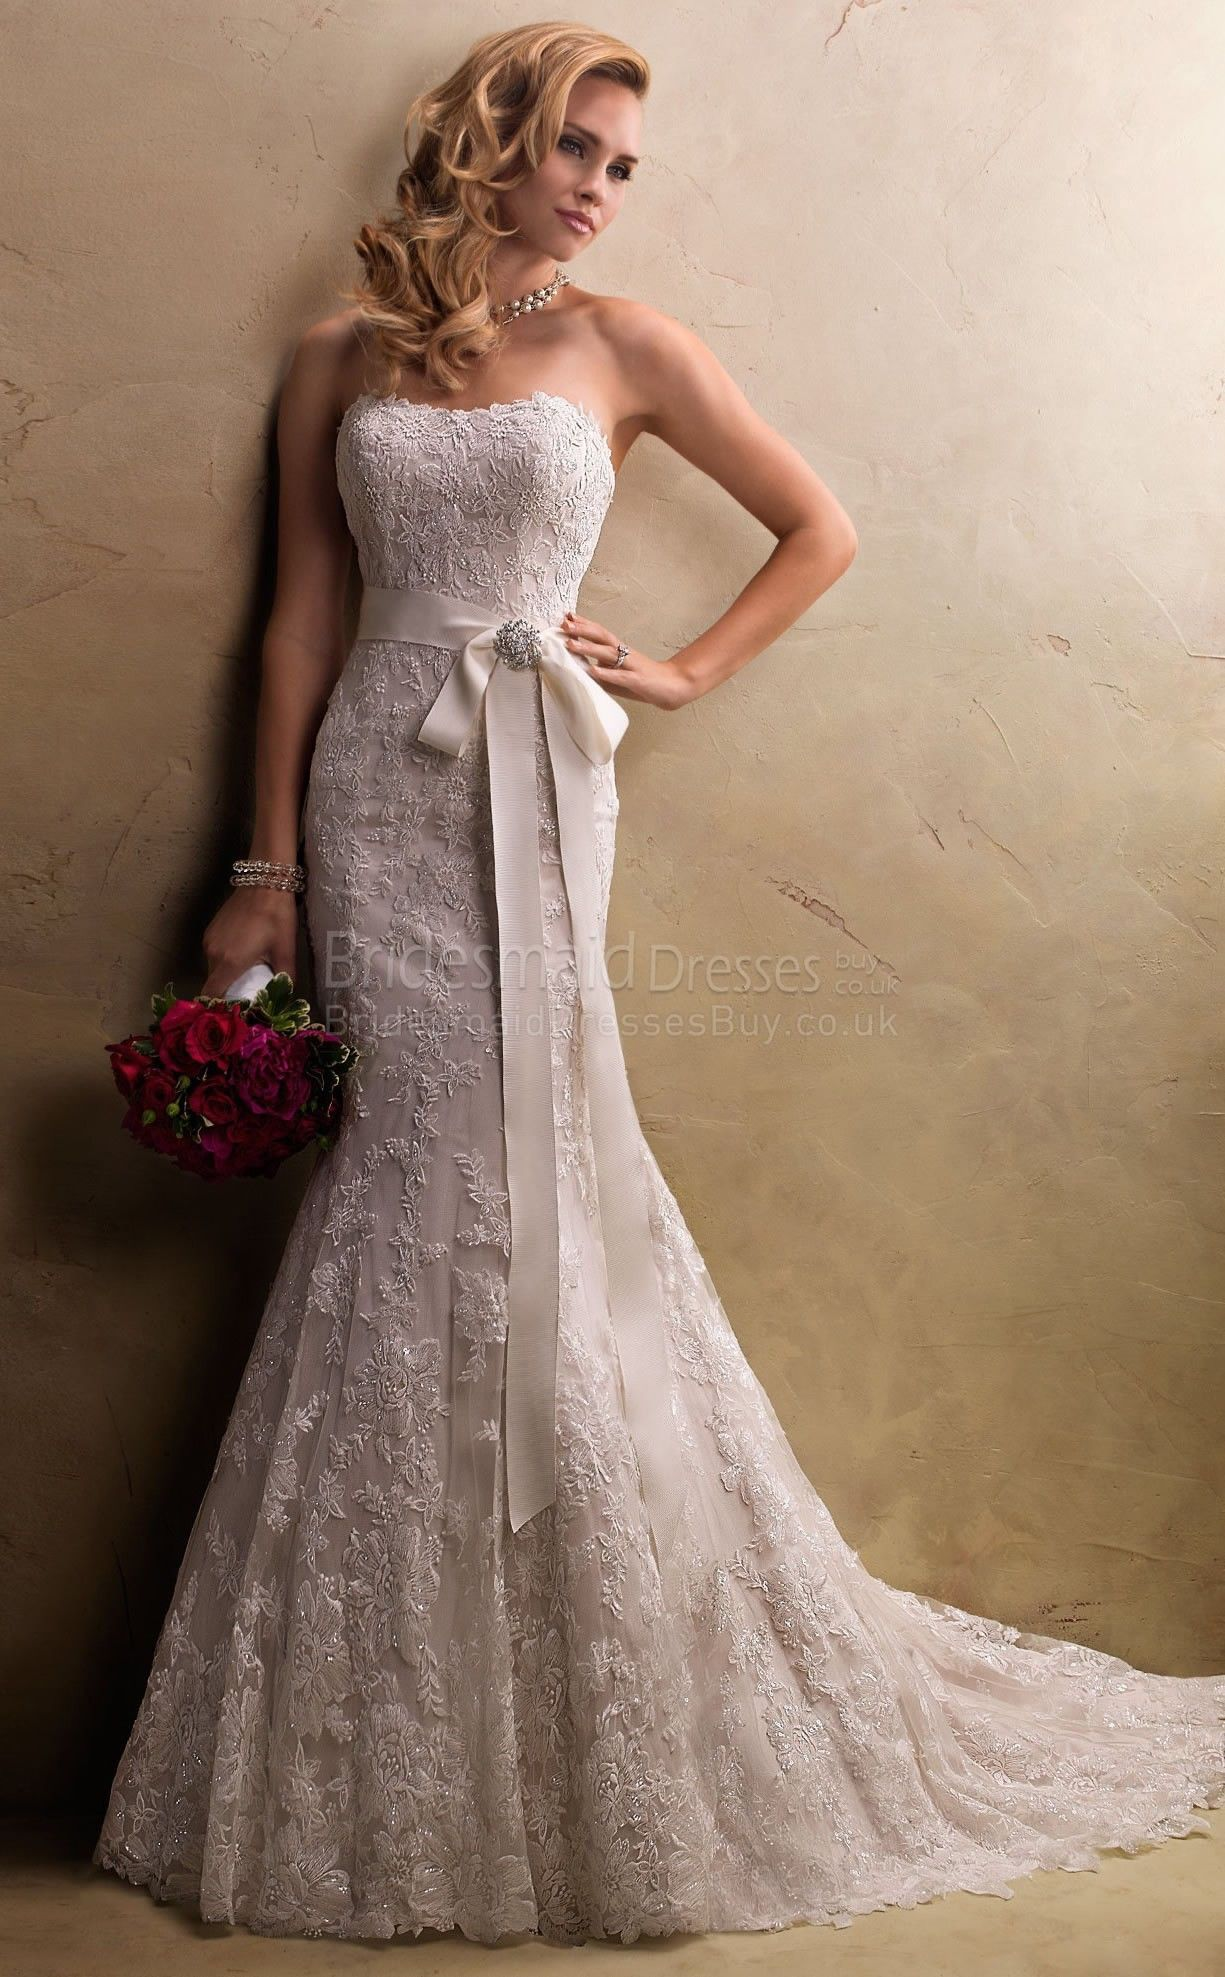 Love this lace wedding dressesvintage wedding dressesstrapless